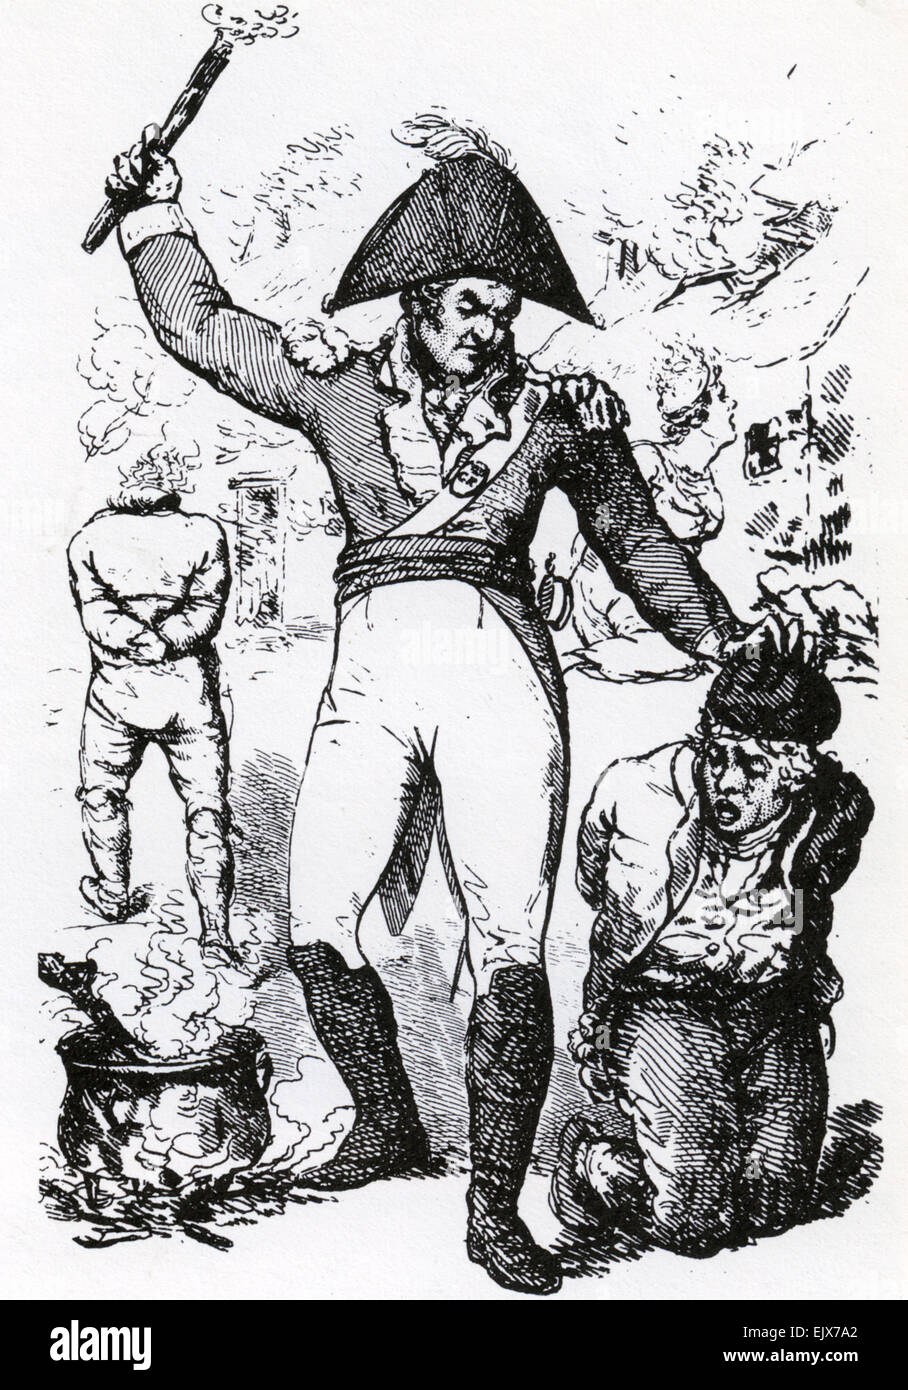 PITCHCAPPING A form of torture used by the British military on Irish rebels during the 1798 rebellion. From Walter - Stock Image